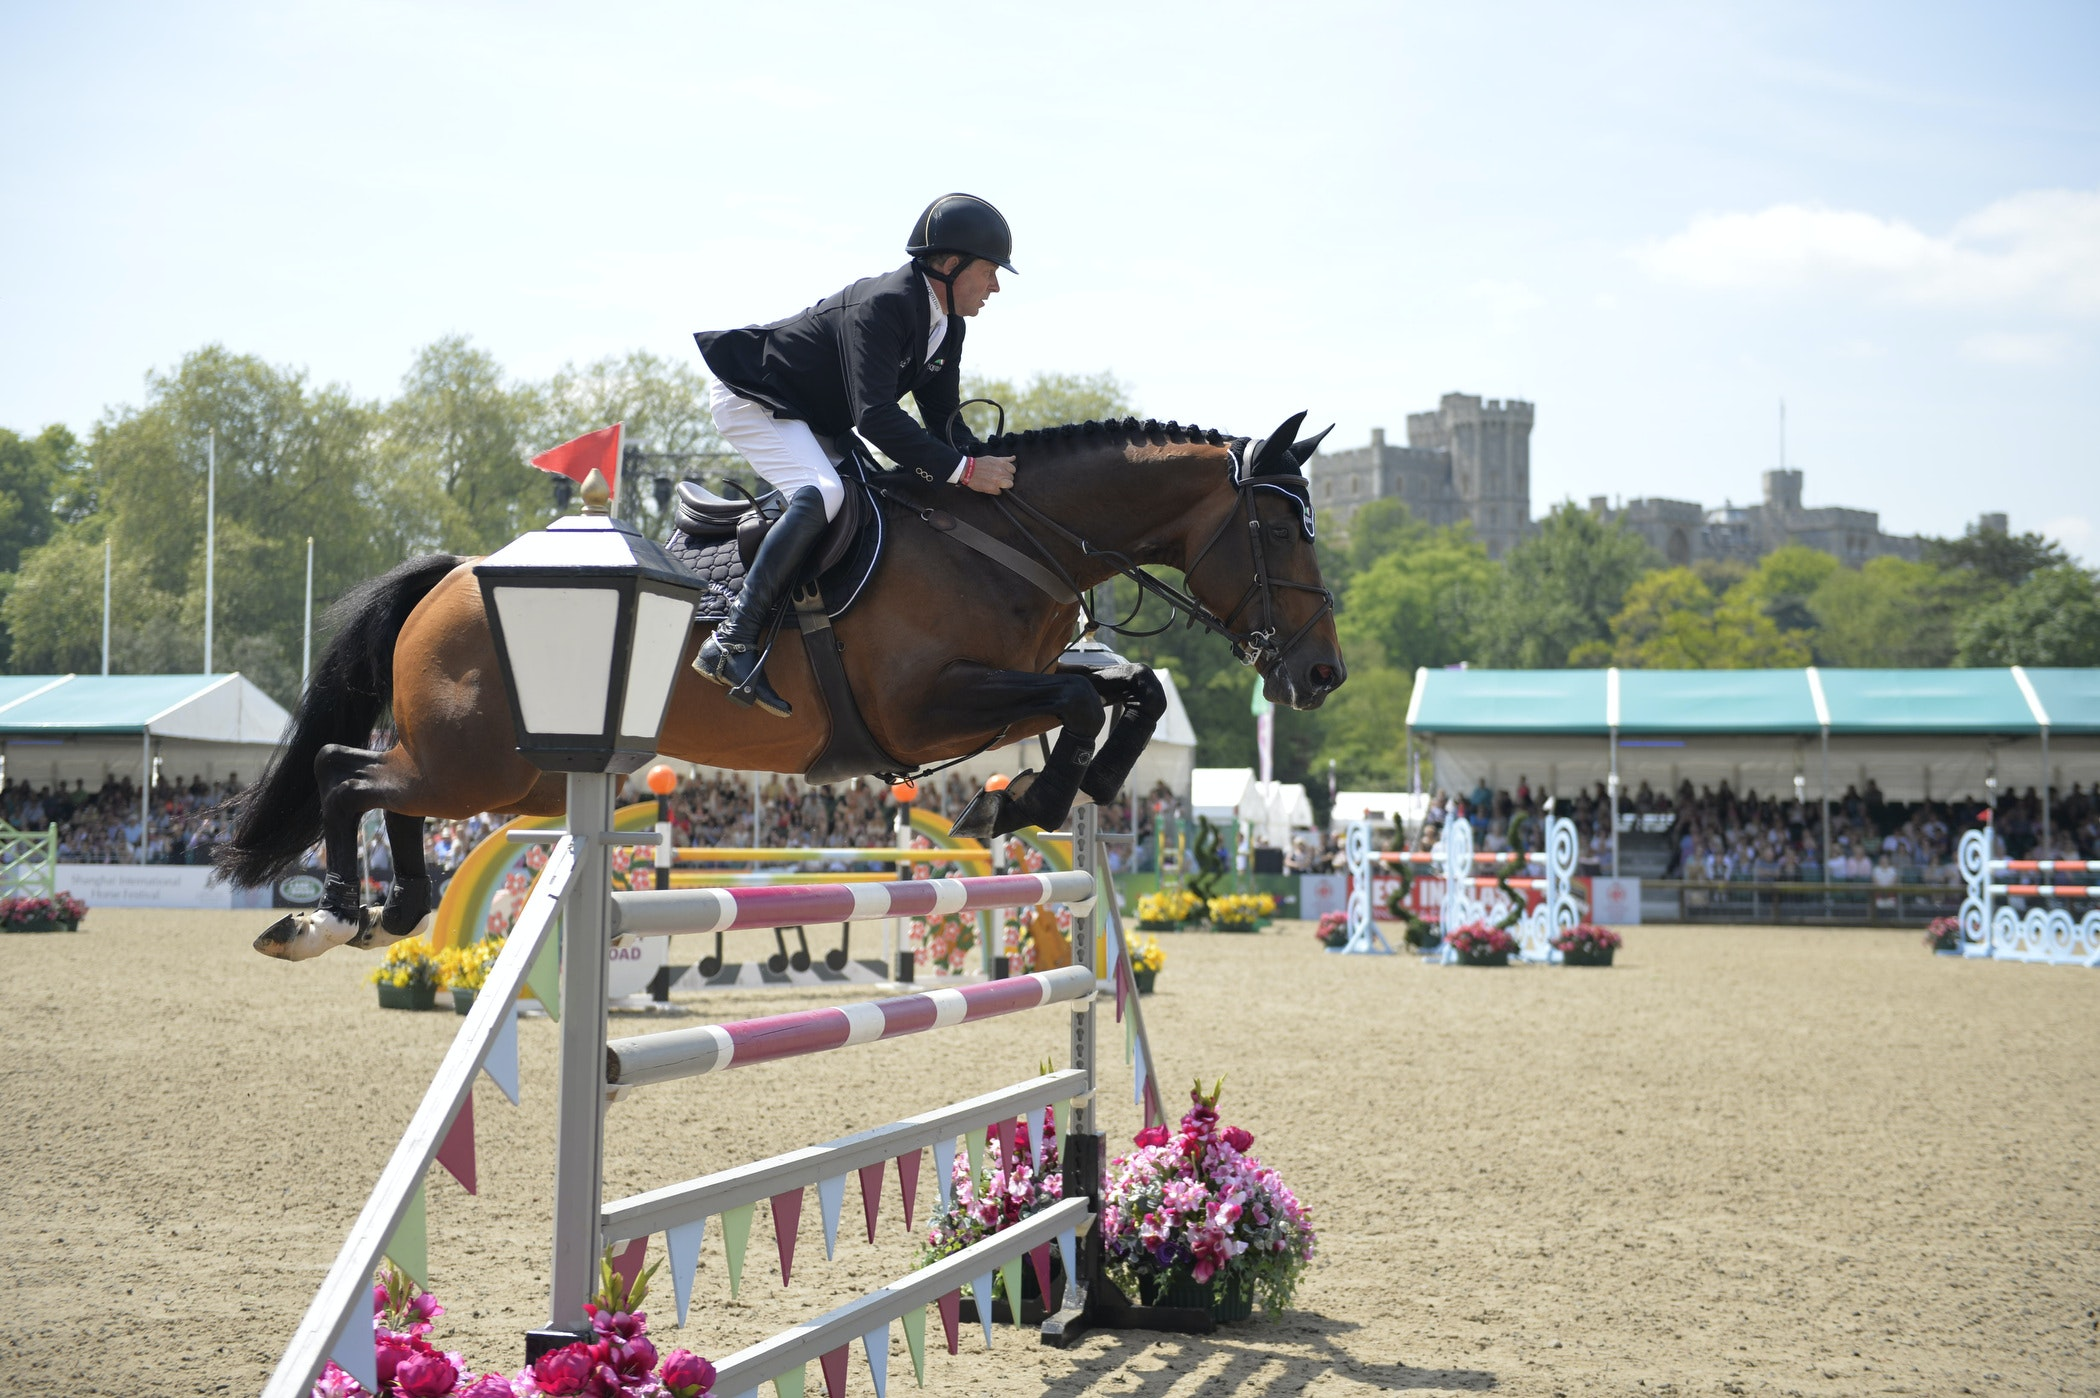 VIP experience at Royal Windsor Horse Show sweepstakes